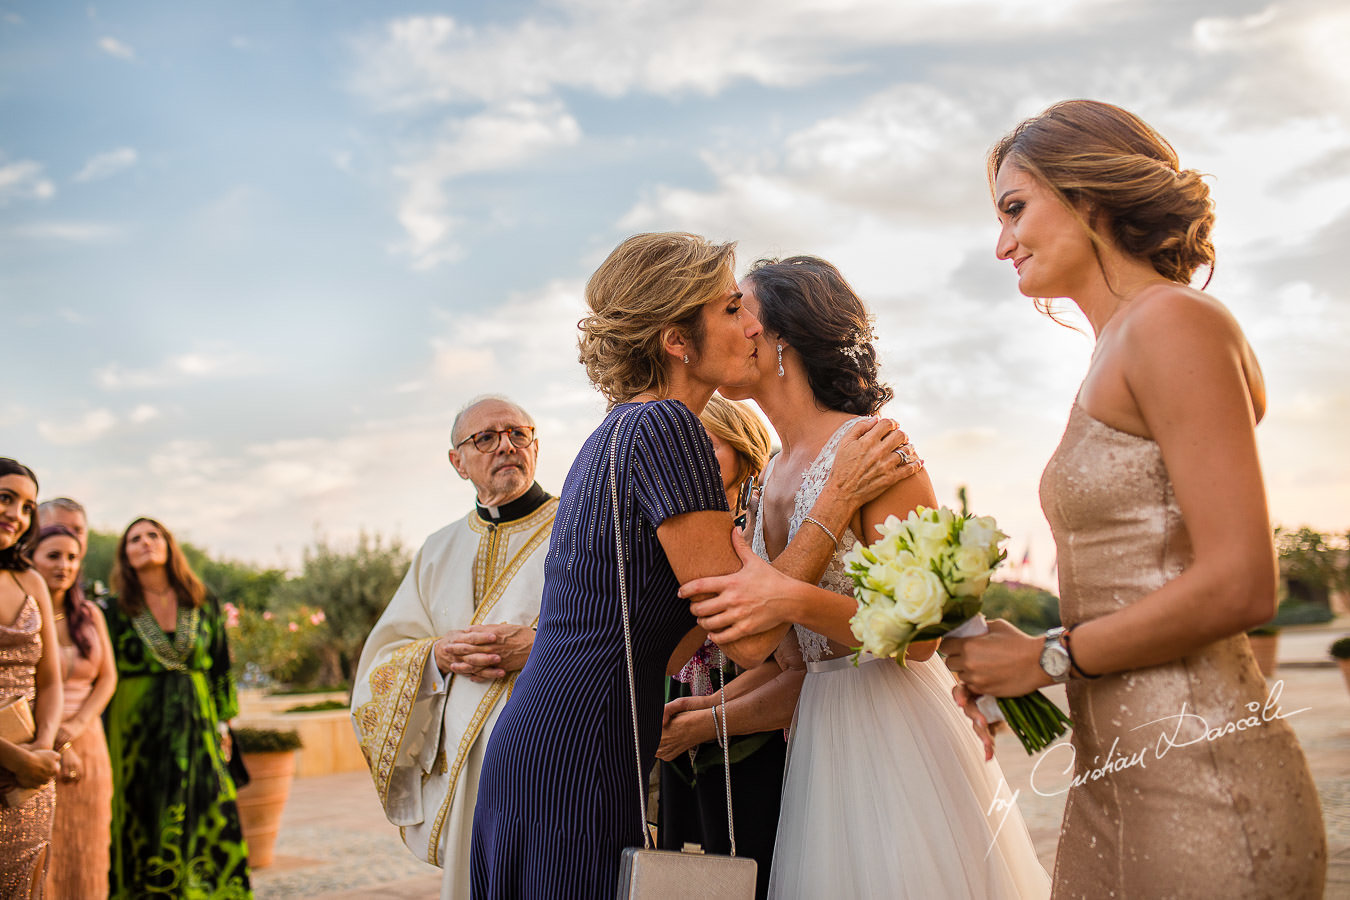 A Stylish Wedding at the Elysium Hotel captured by Cyprus Wedding Photographer Cristian Dascalu.